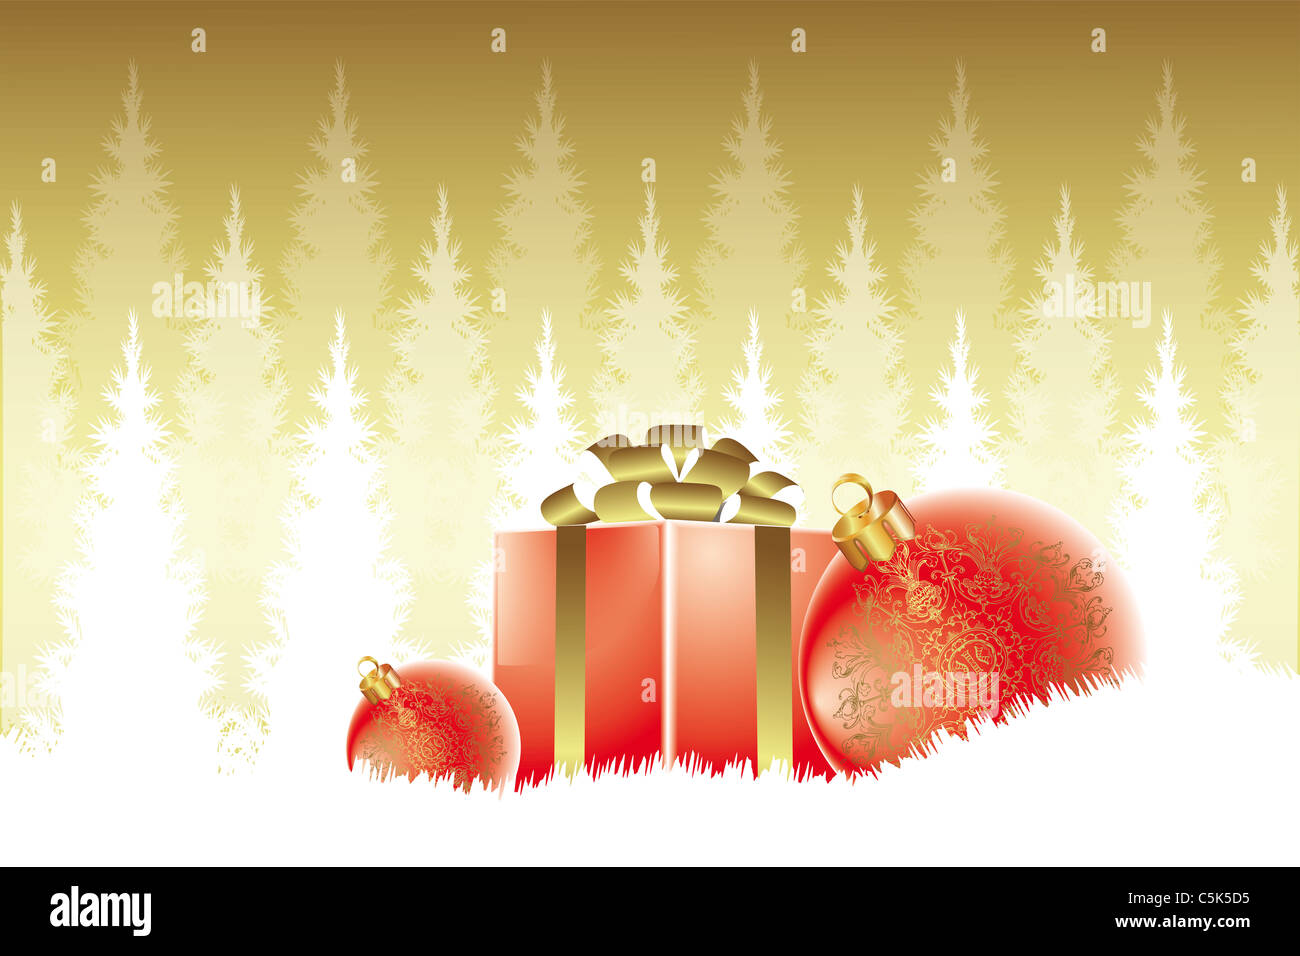 White christmas tree with red and gold decorations - Beautiful Christmas Card With Baubles In Red And Gold Decoration Combined White Christmas Trees On Golden Background